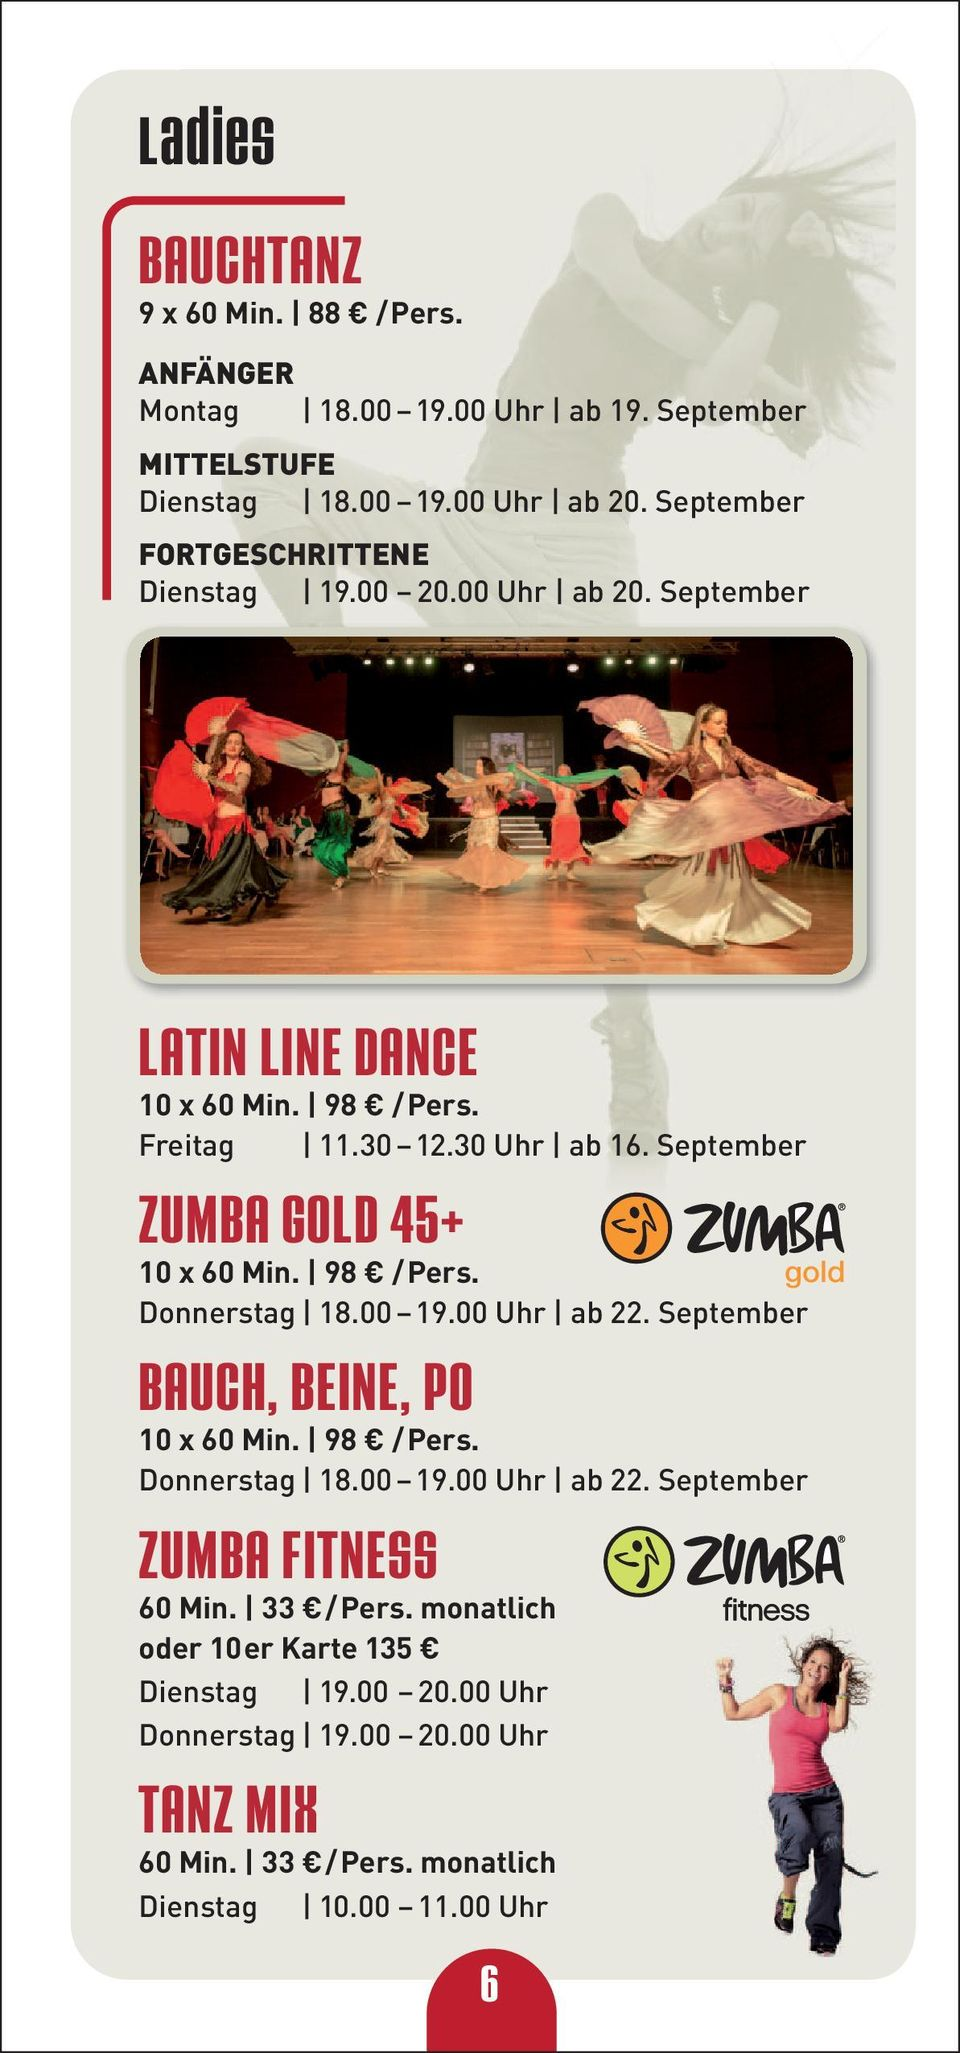 September ZUMBA GOLD 45+ 10 x 60 Min. 98 /Pers. Donnerstag 18.00 19.00 Uhr ab 22. September BAUCH, BEINE, PO 10 x 60 Min. 98 /Pers. Donnerstag 18.00 19.00 Uhr ab 22. September ZUMBA FITNESS 60 Min.